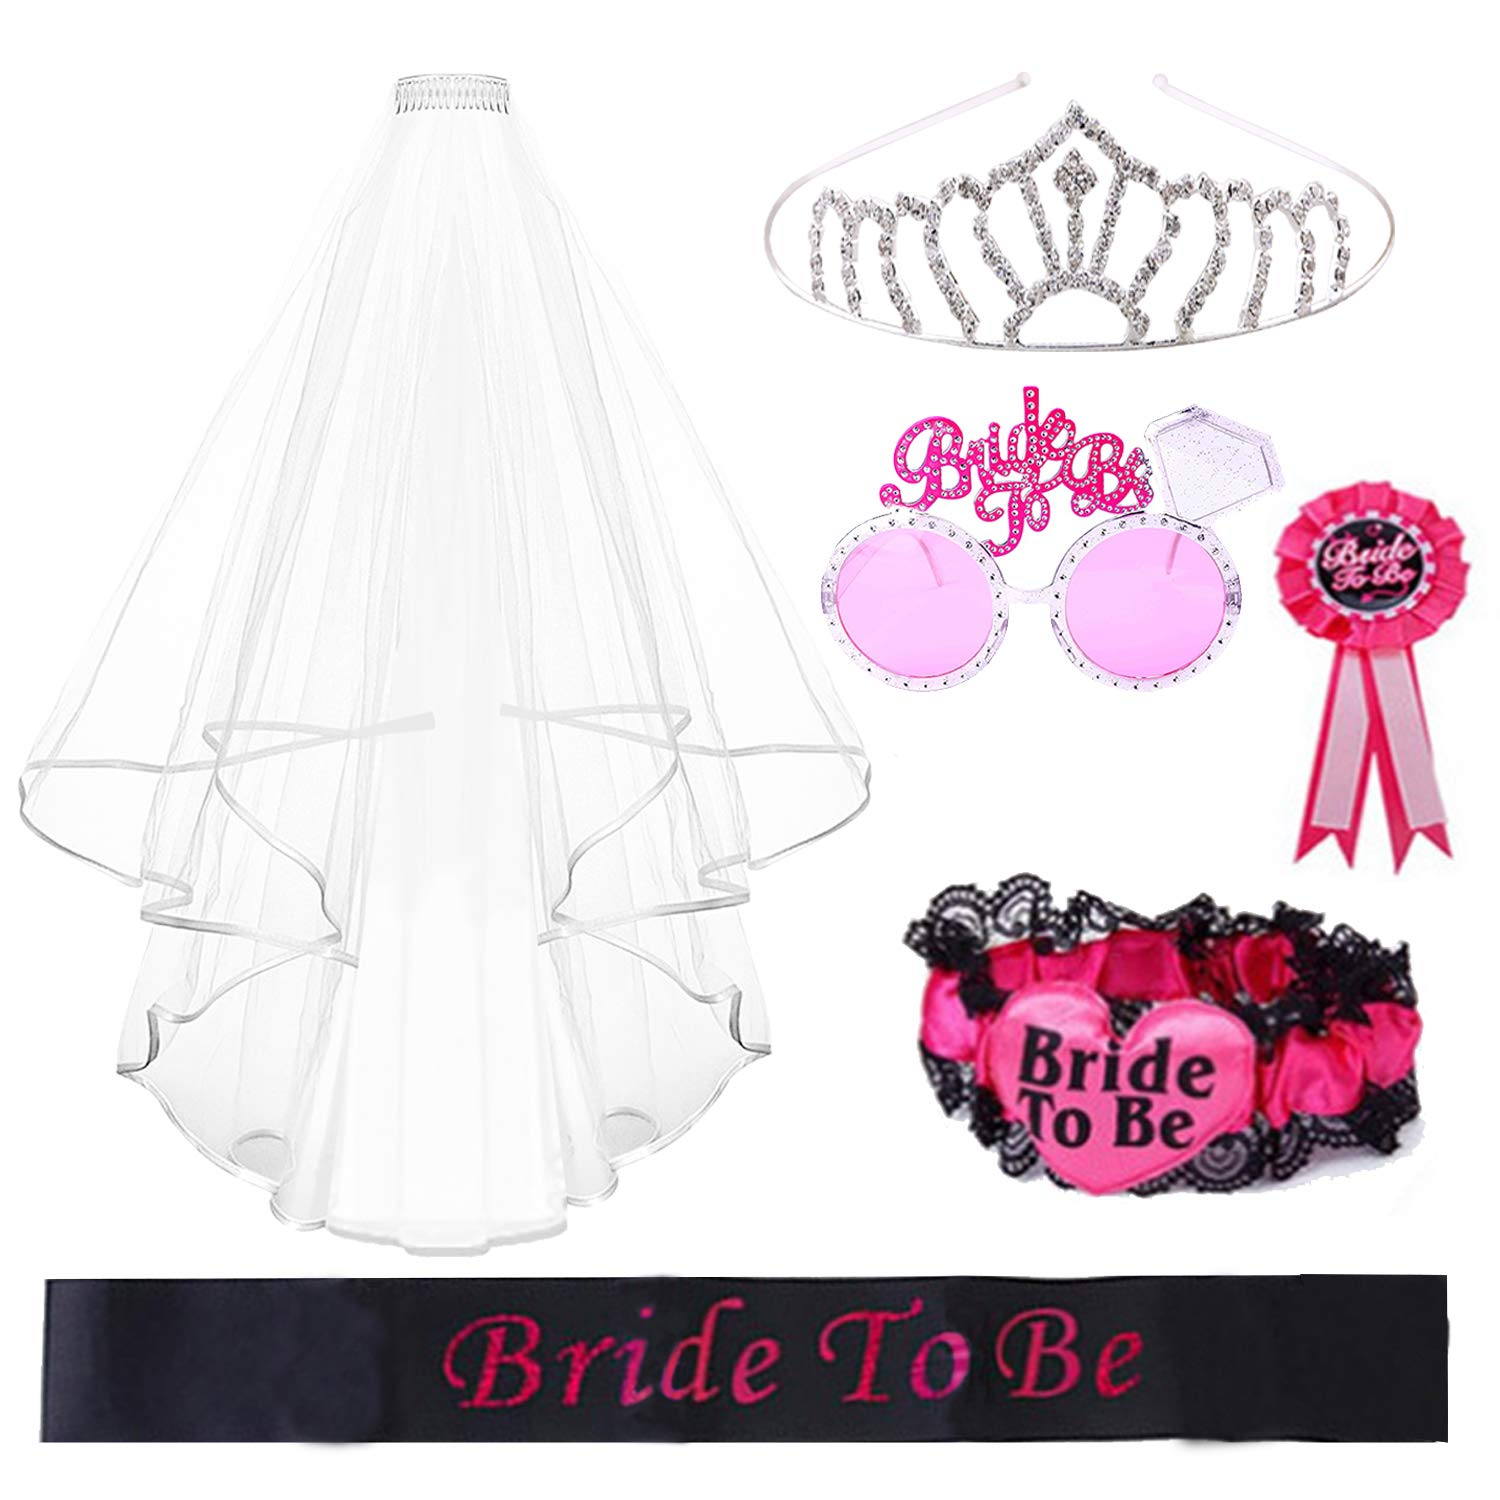 REKYO 6PCS Hen Night Party Accessories Bride To Be Sash, Sunglasses, Tiara Veil, Badge Garter Hen Do Party Stag Night Game Accessory Kit